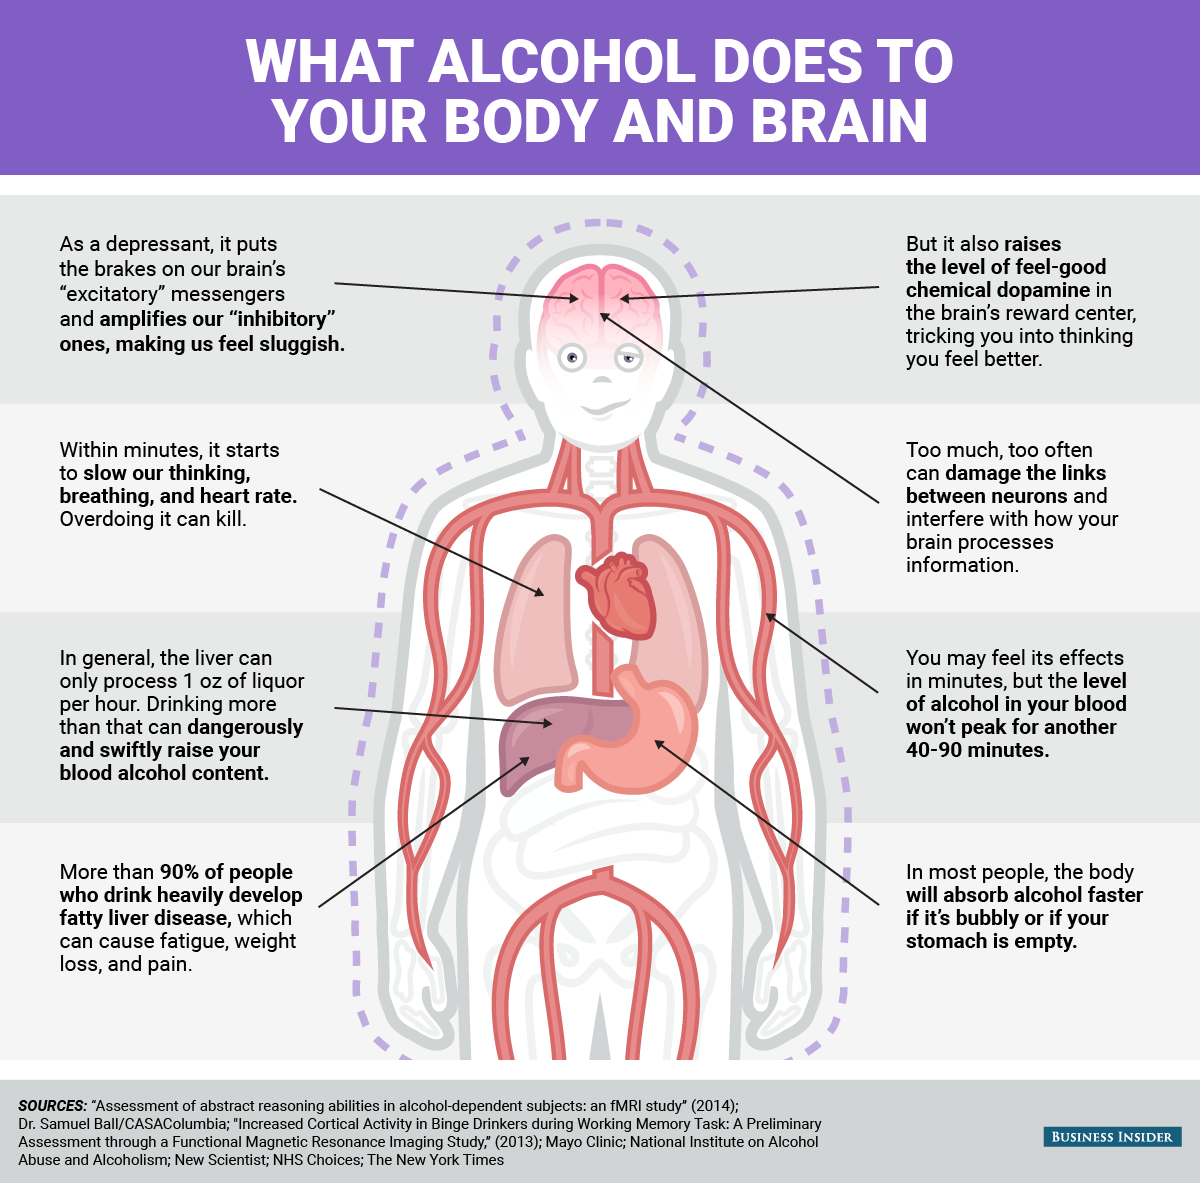 bi_graphics_what alcohol does to your body and mind